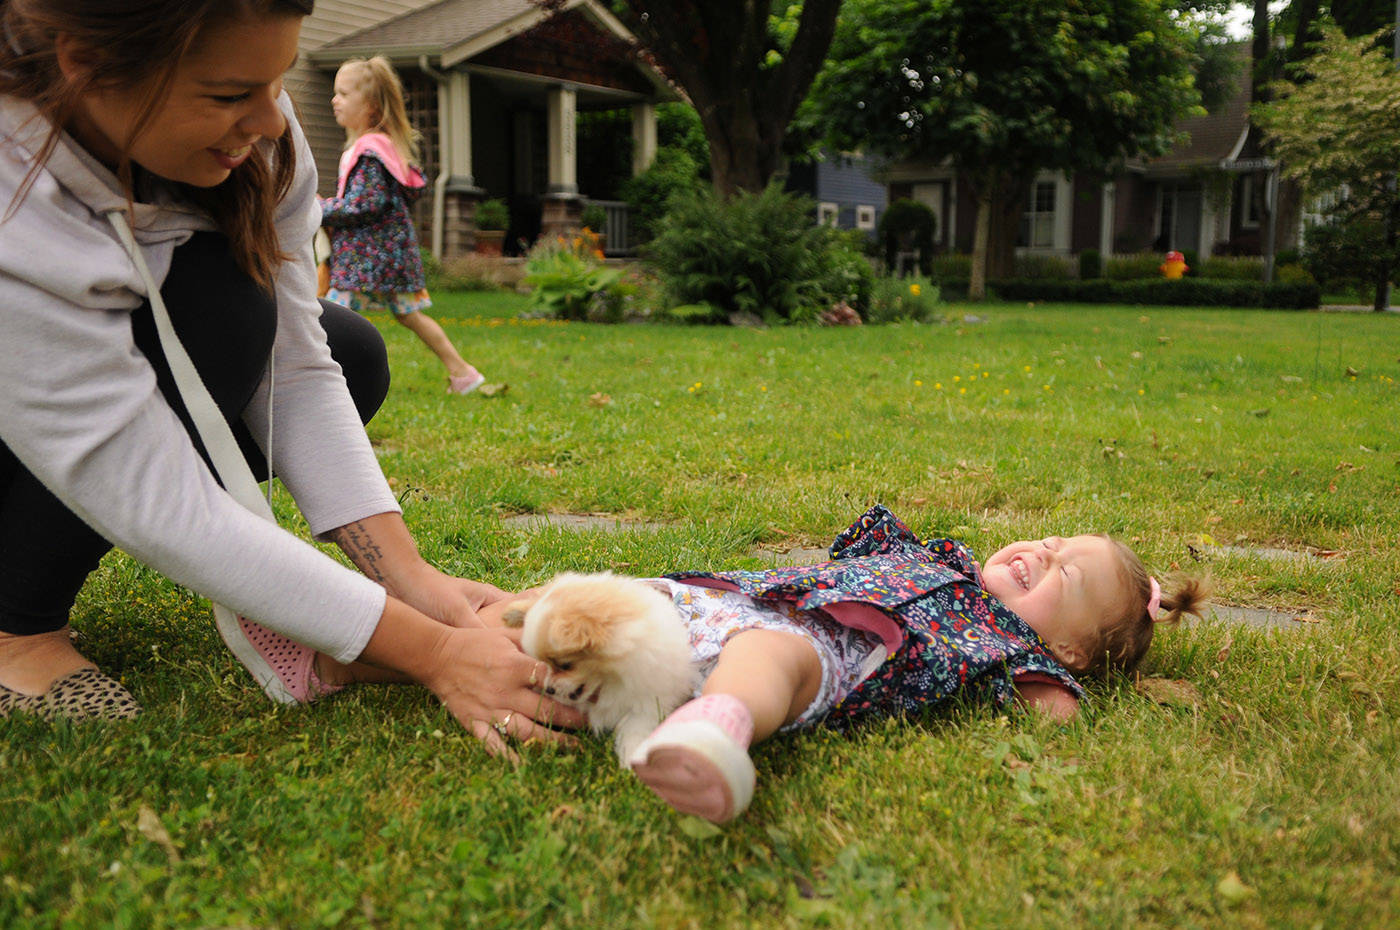 Two-year-old Ivy McLeod falls over from laughing so hard while playing with Lucky the puppy outside their Chilliwack home on Thursday, June 10, 2021. (Jenna Hauck/ Chilliwack Progress)